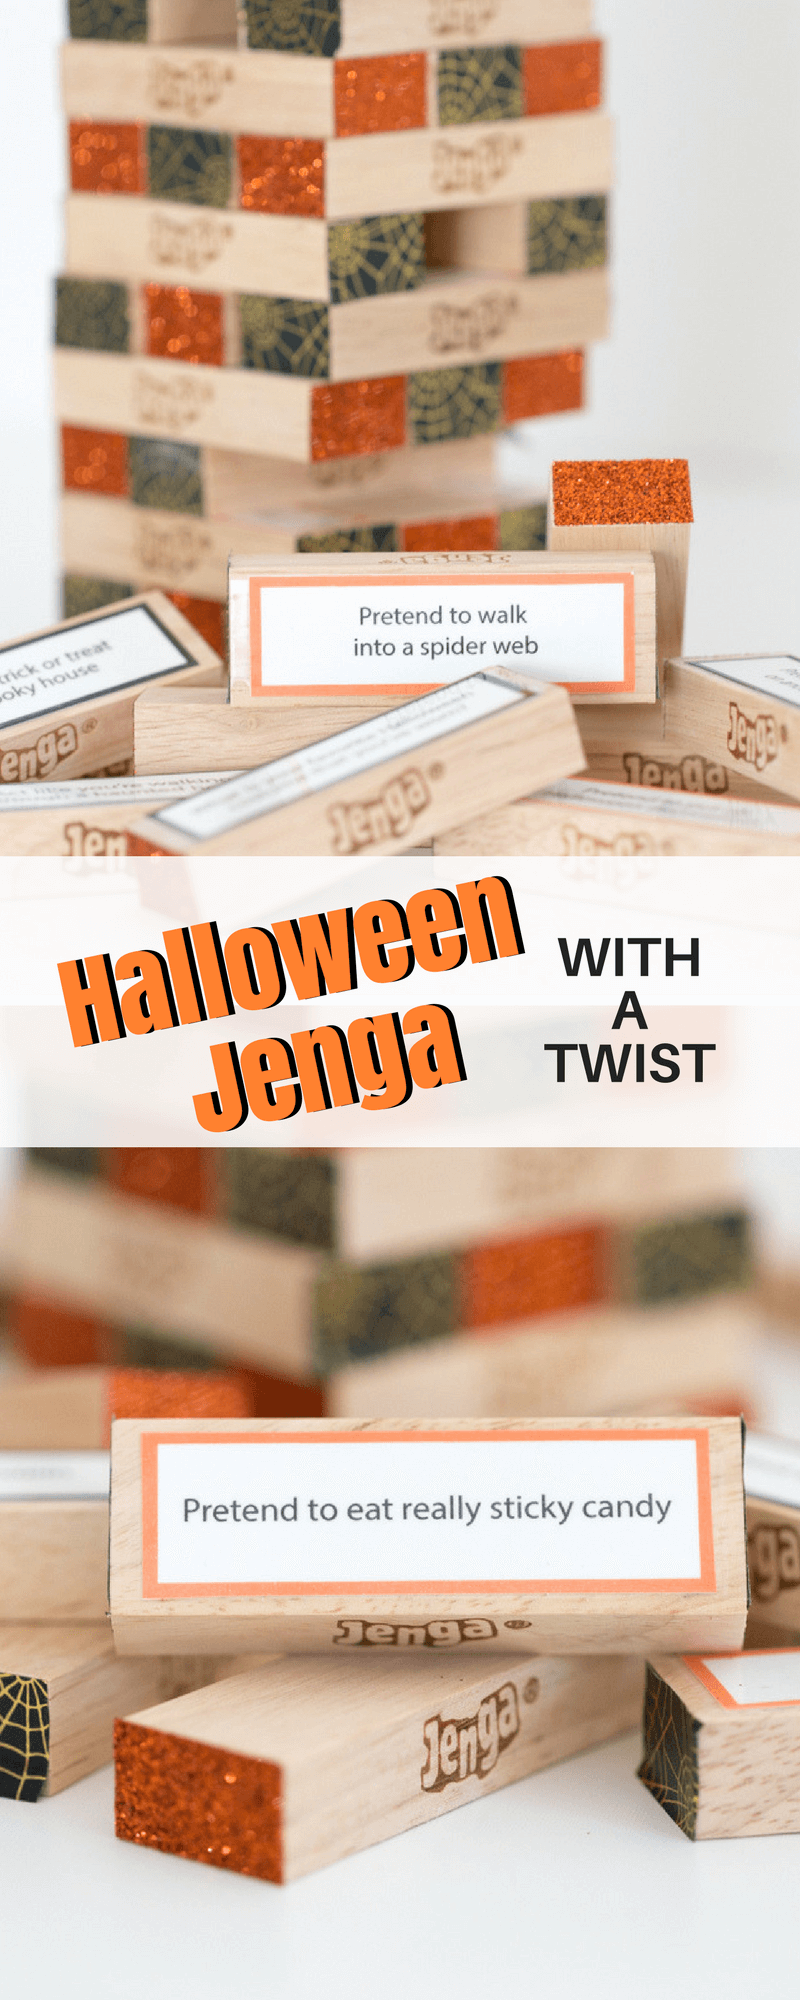 Looking for the perfect Halloween Party Game Idea? This DIY Halloween Jenga with a twist is a fun and festive game that your whole family is sure to enjoy!